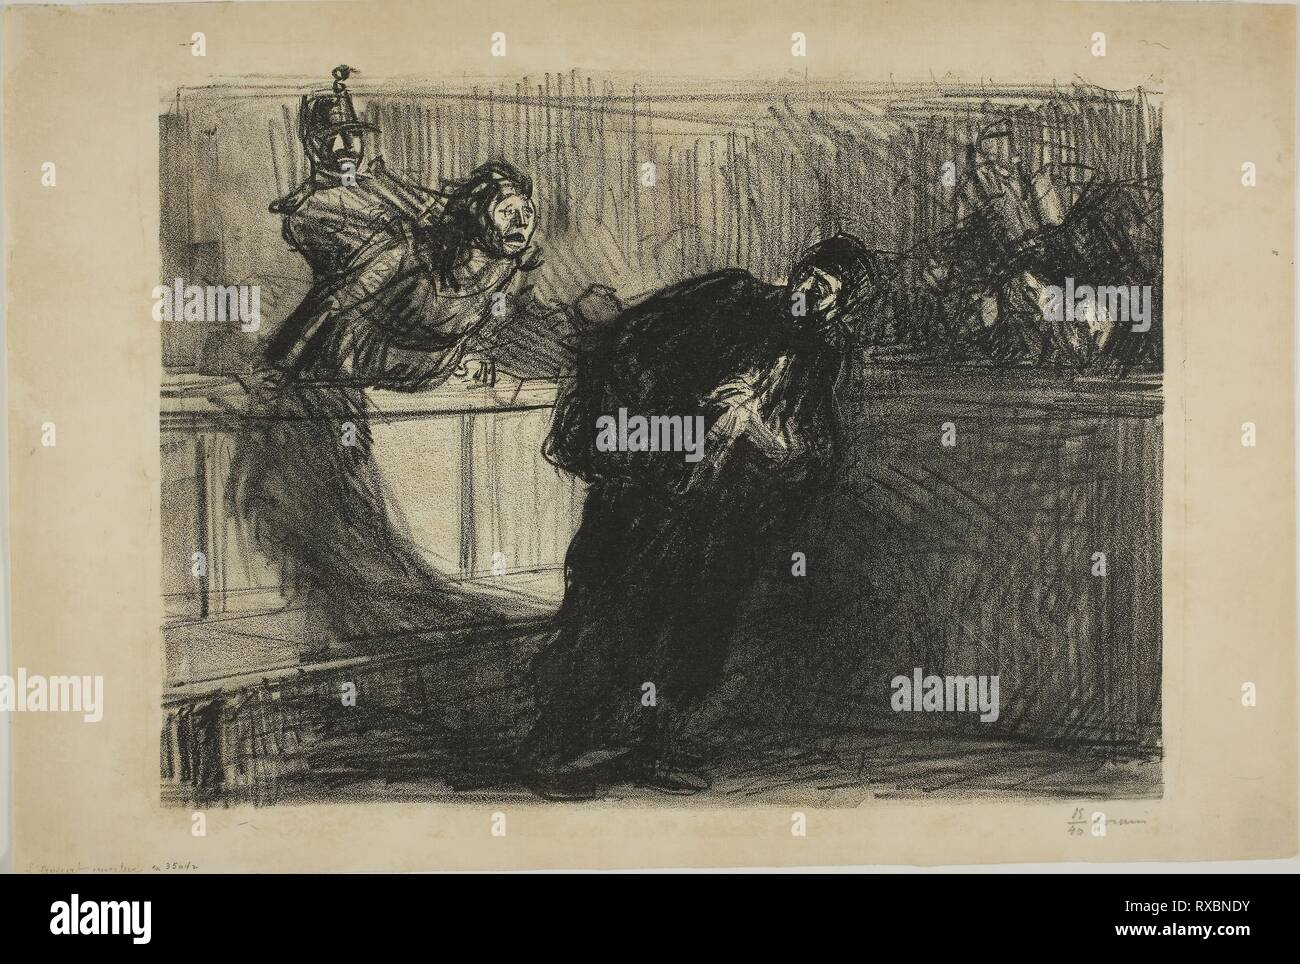 The Lawyer Abused. Jean Louis Forain; French, 1852-1931. Date: 1914. Dimensions: 299 × 405 mm (image); 348 × 520 mm (sheet). Lithograph on cream laid paper. Origin: France. Museum: The Chicago Art Institute. - Stock Image